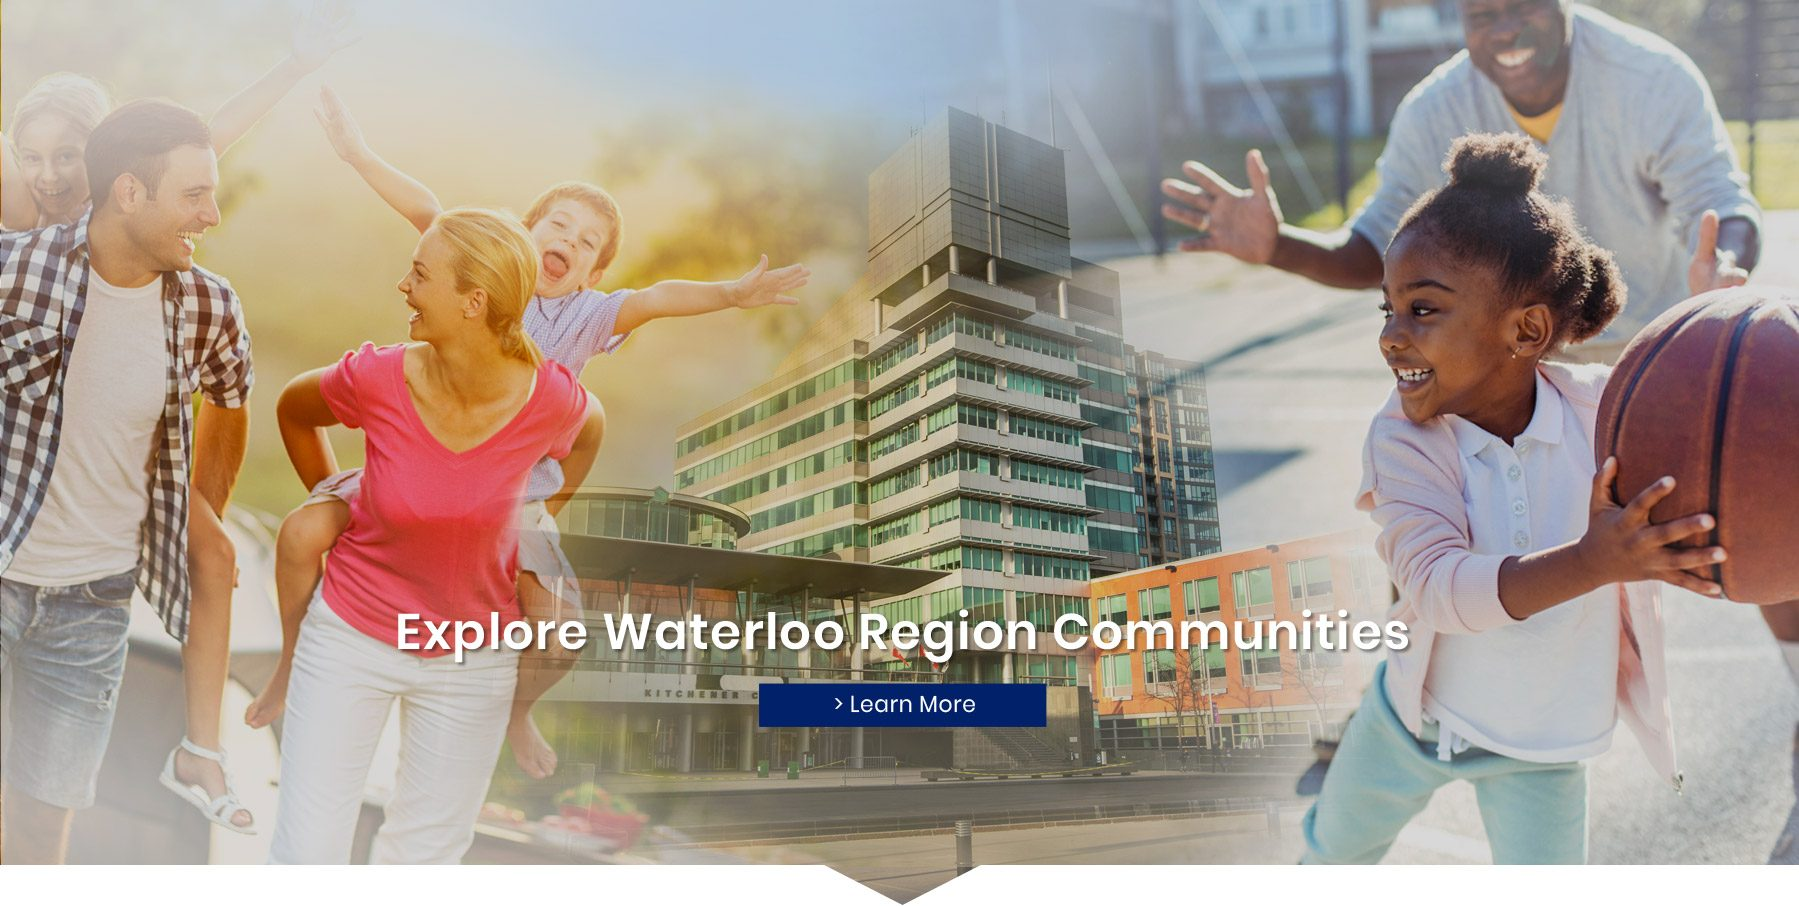 Explore Waterloo Region Neighborhoods